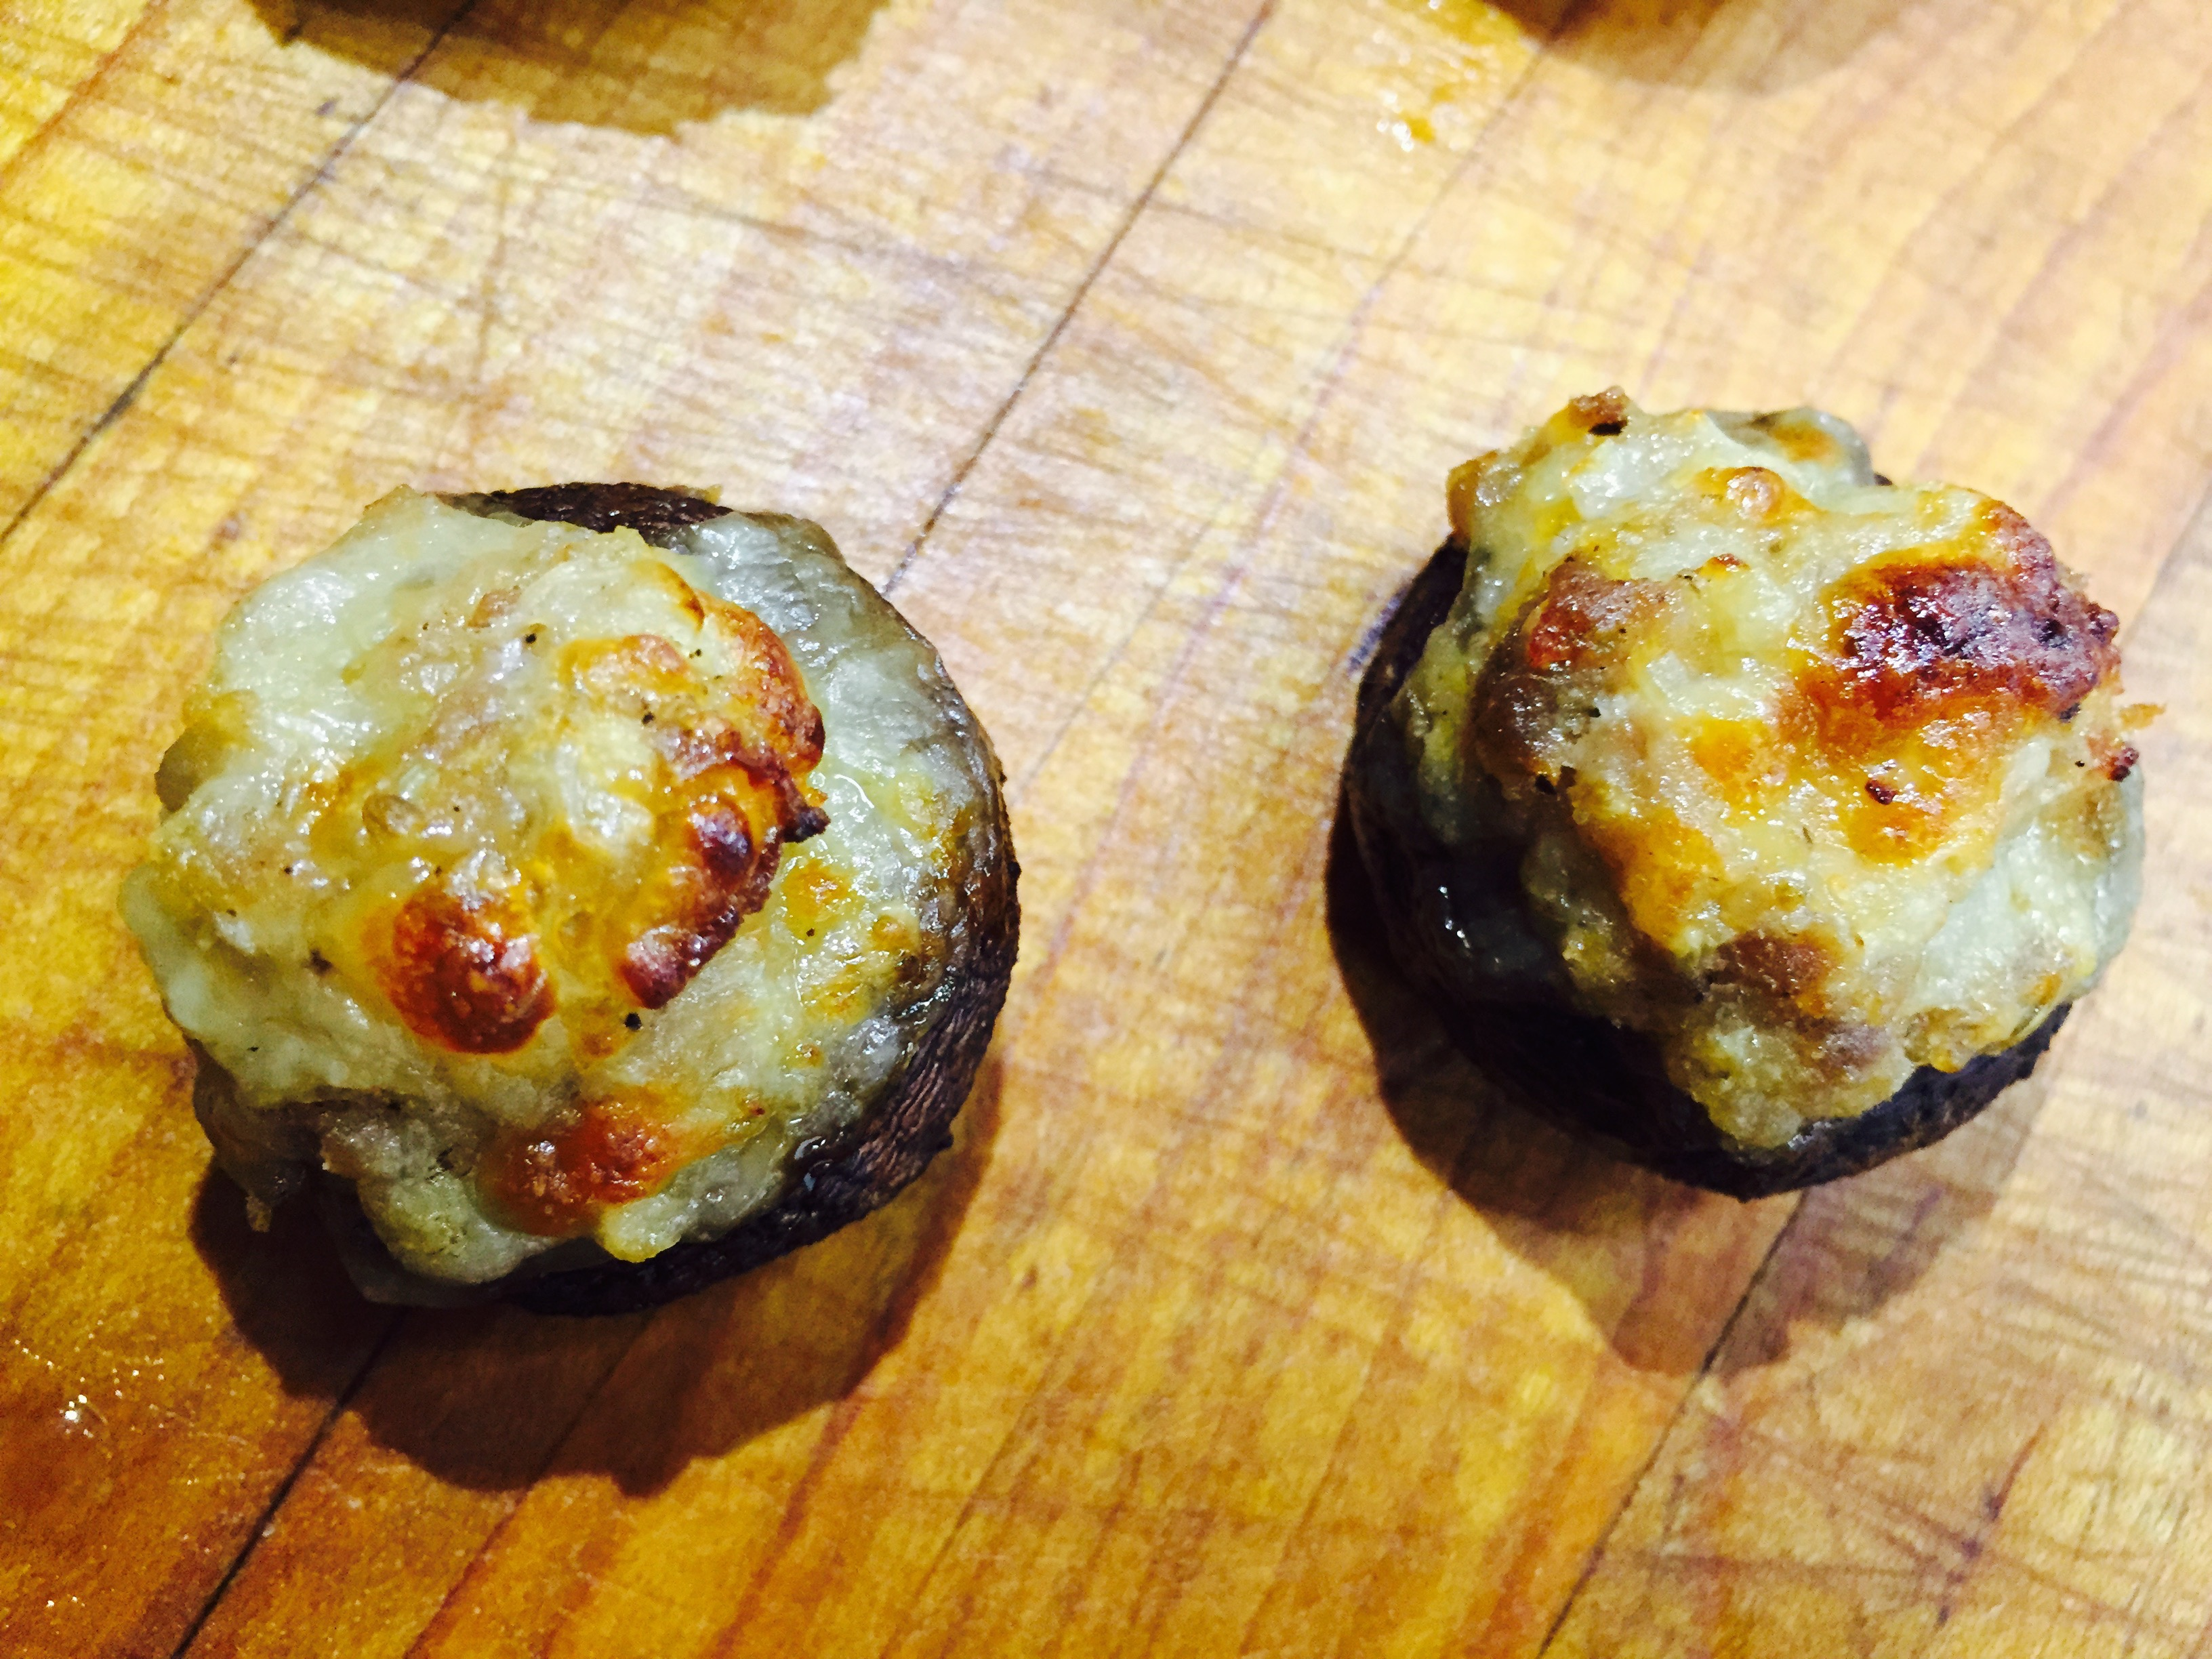 Italian Sausage and Mozzarella Stuffed Mushroom